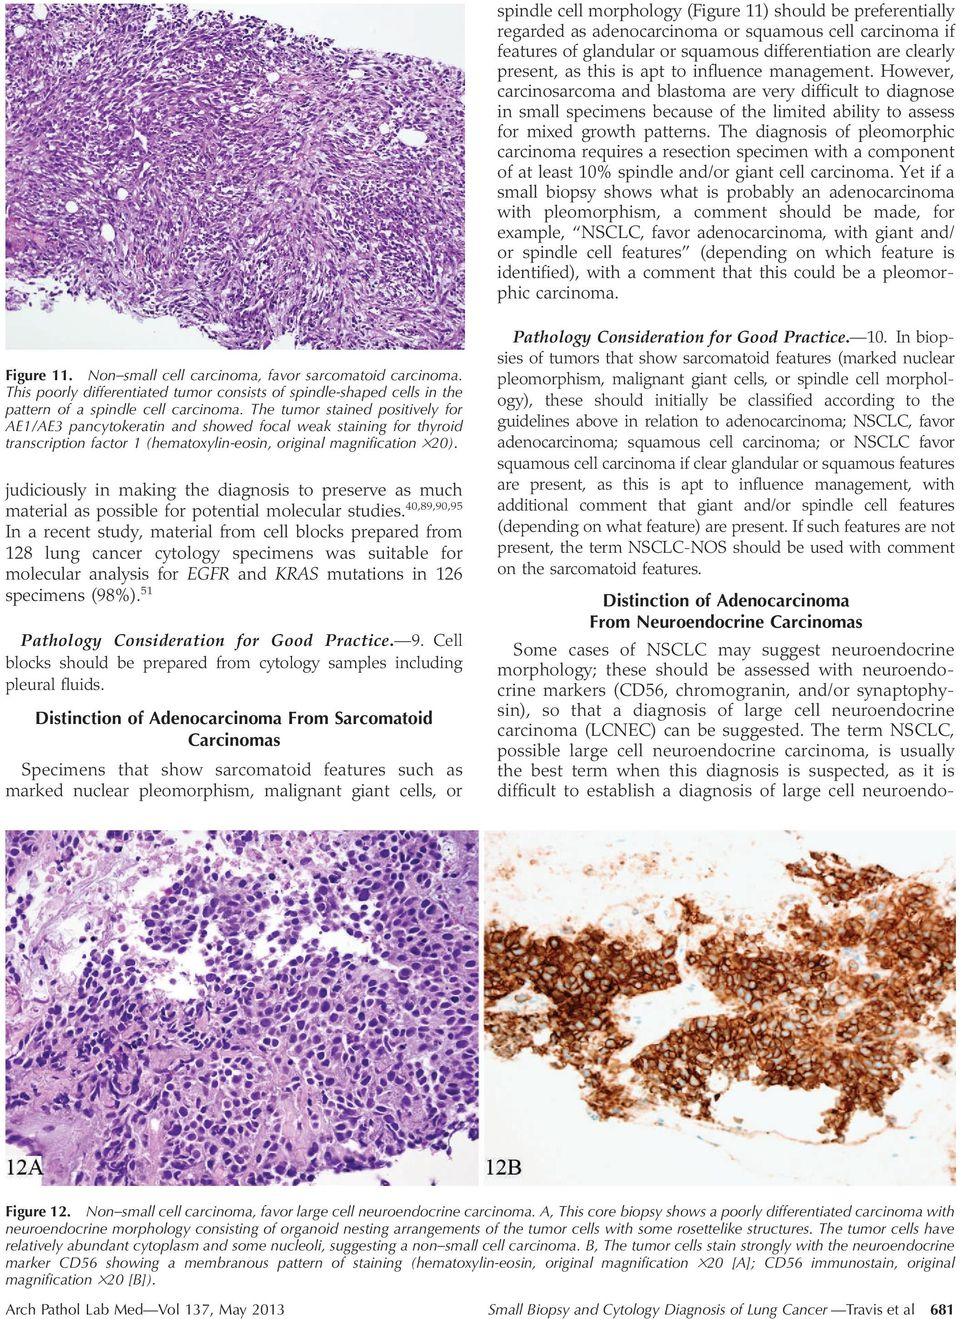 The diagnosis of pleomorphic carcinoma requires a resection specimen with a component of at least 10% spindle and/or giant cell carcinoma.